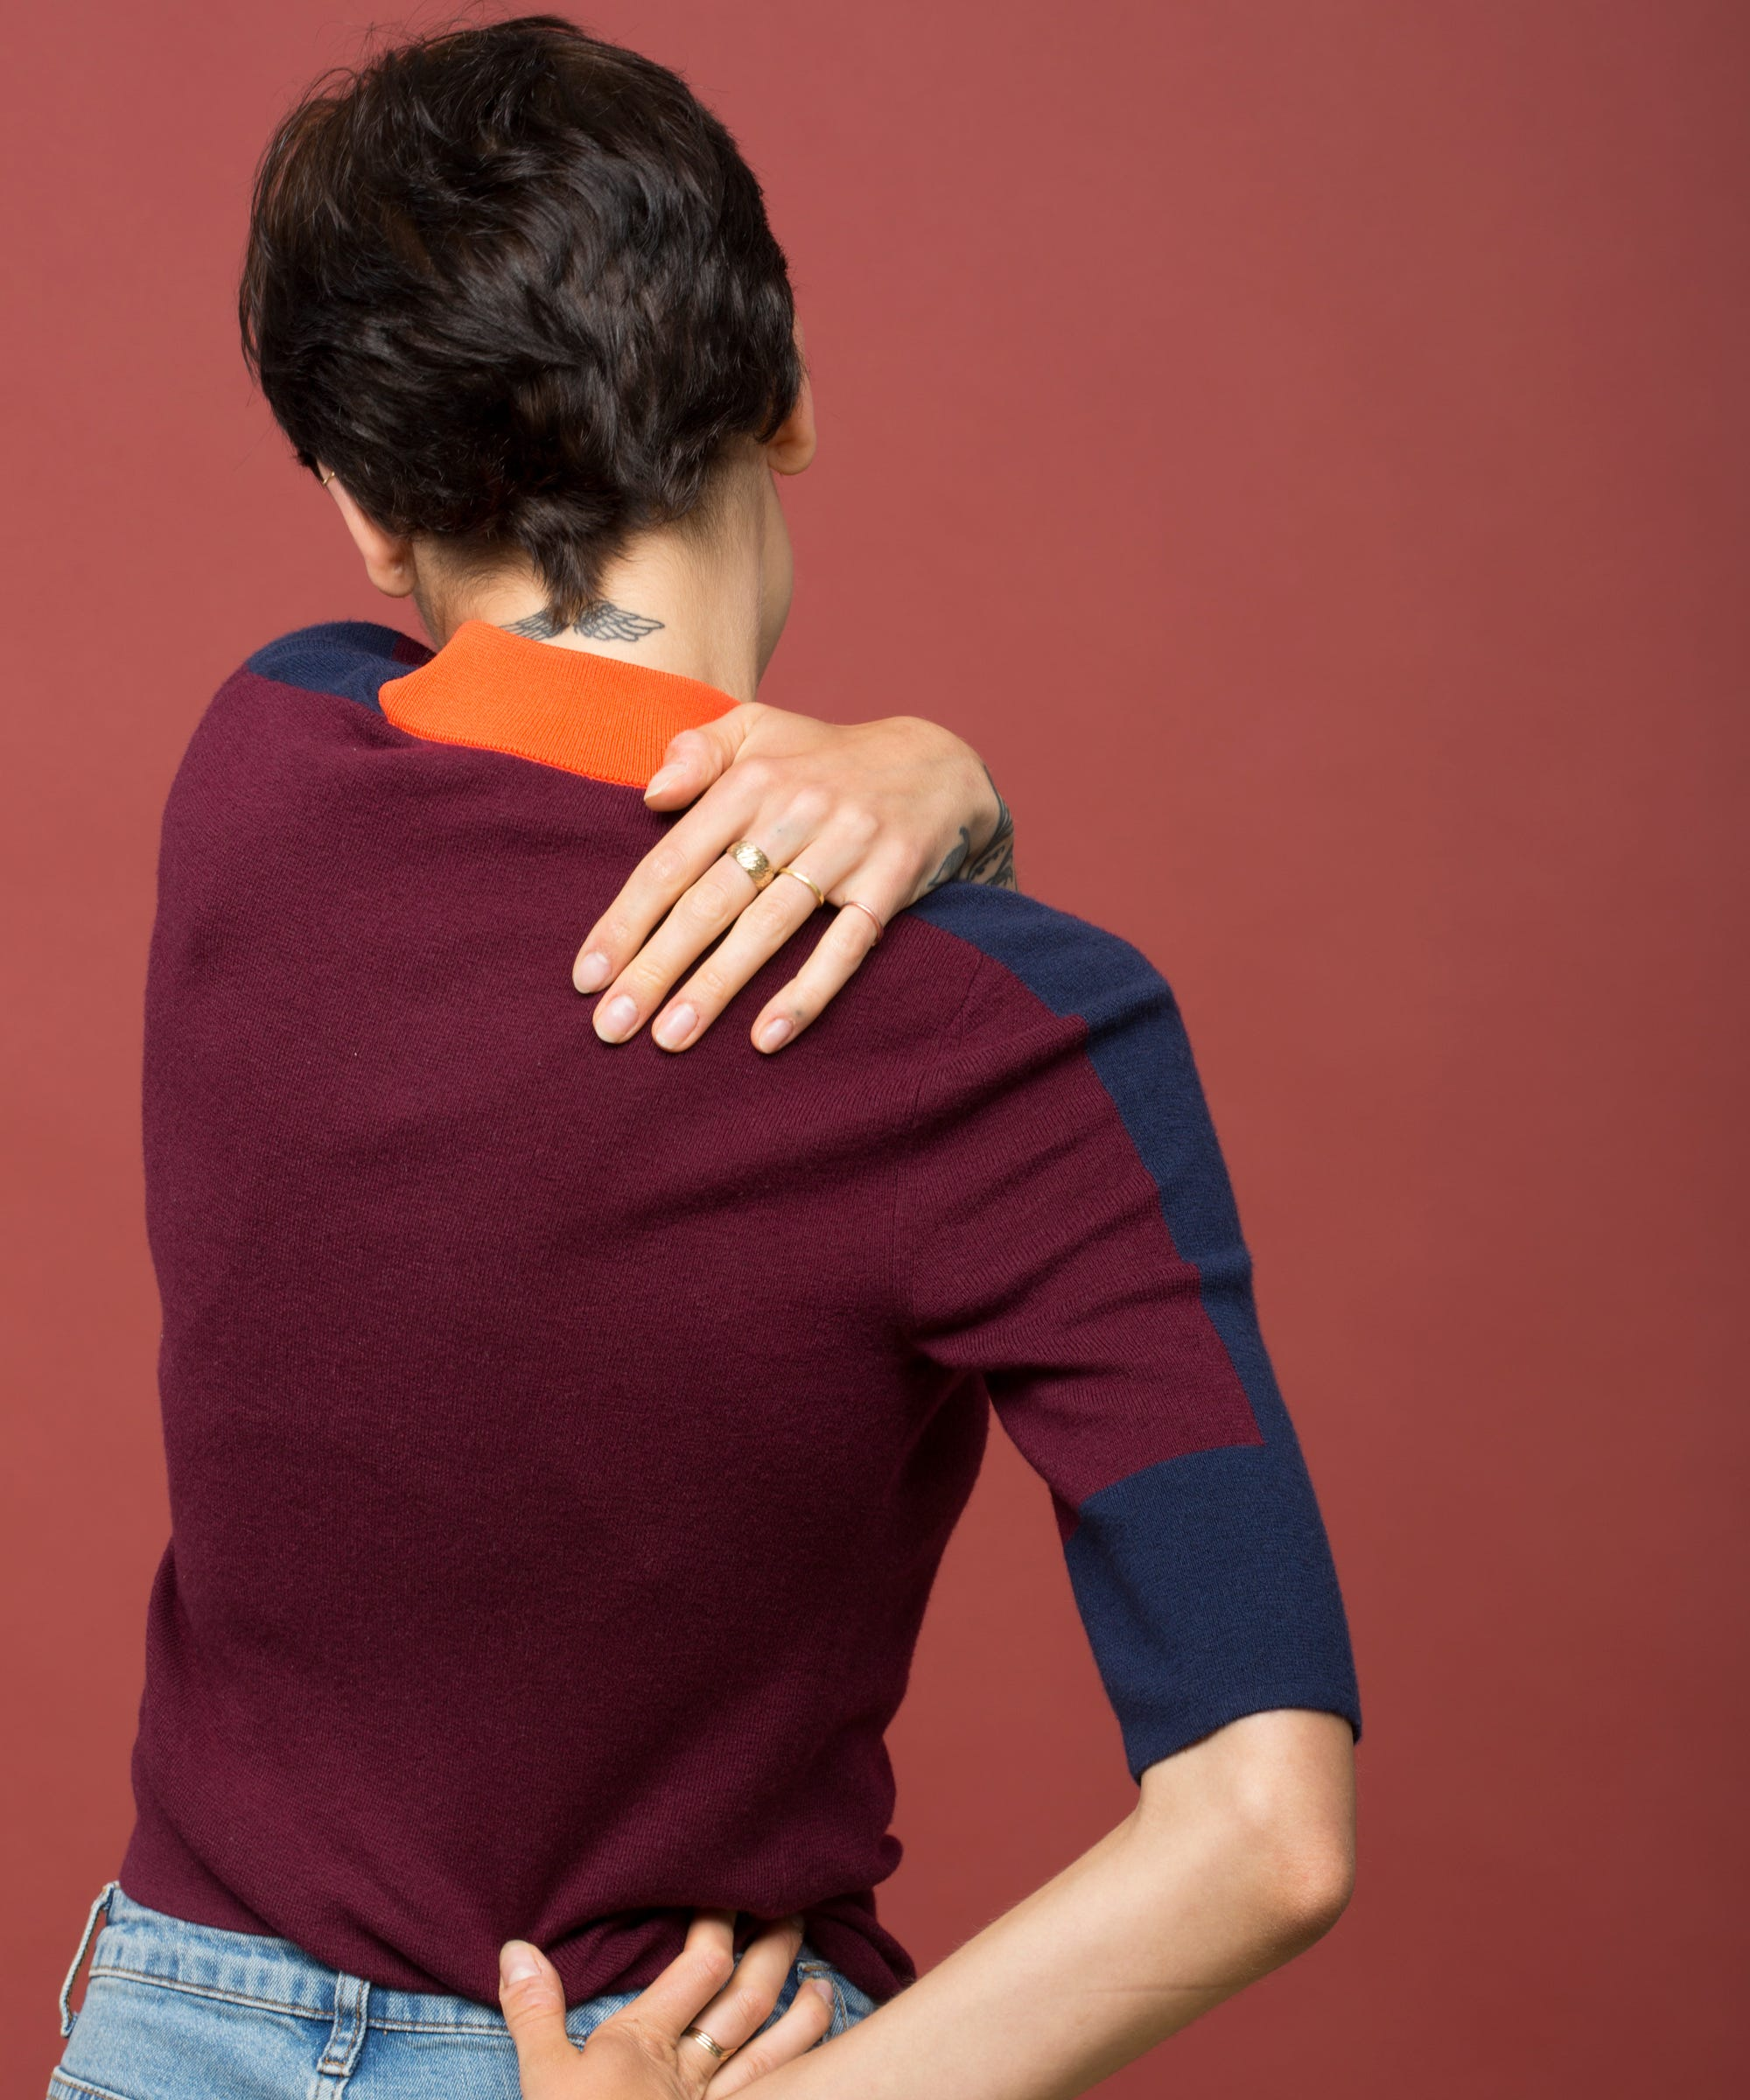 Communication on this topic: 6 Moves To Shrug Off Shoulder Pain, 6-moves-to-shrug-off-shoulder-pain/